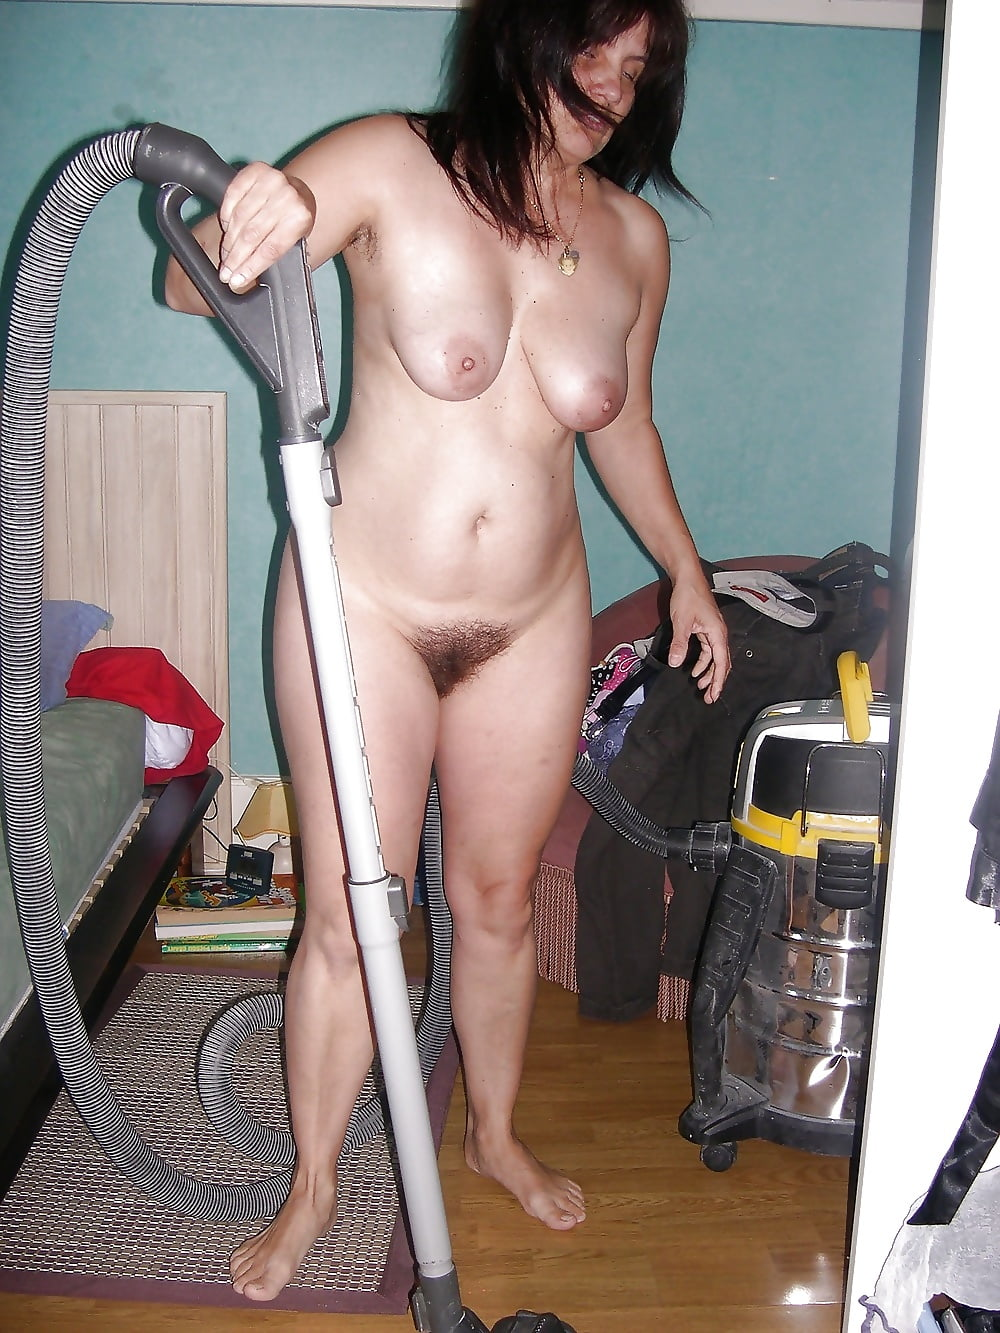 Wife cleaning nude-9140